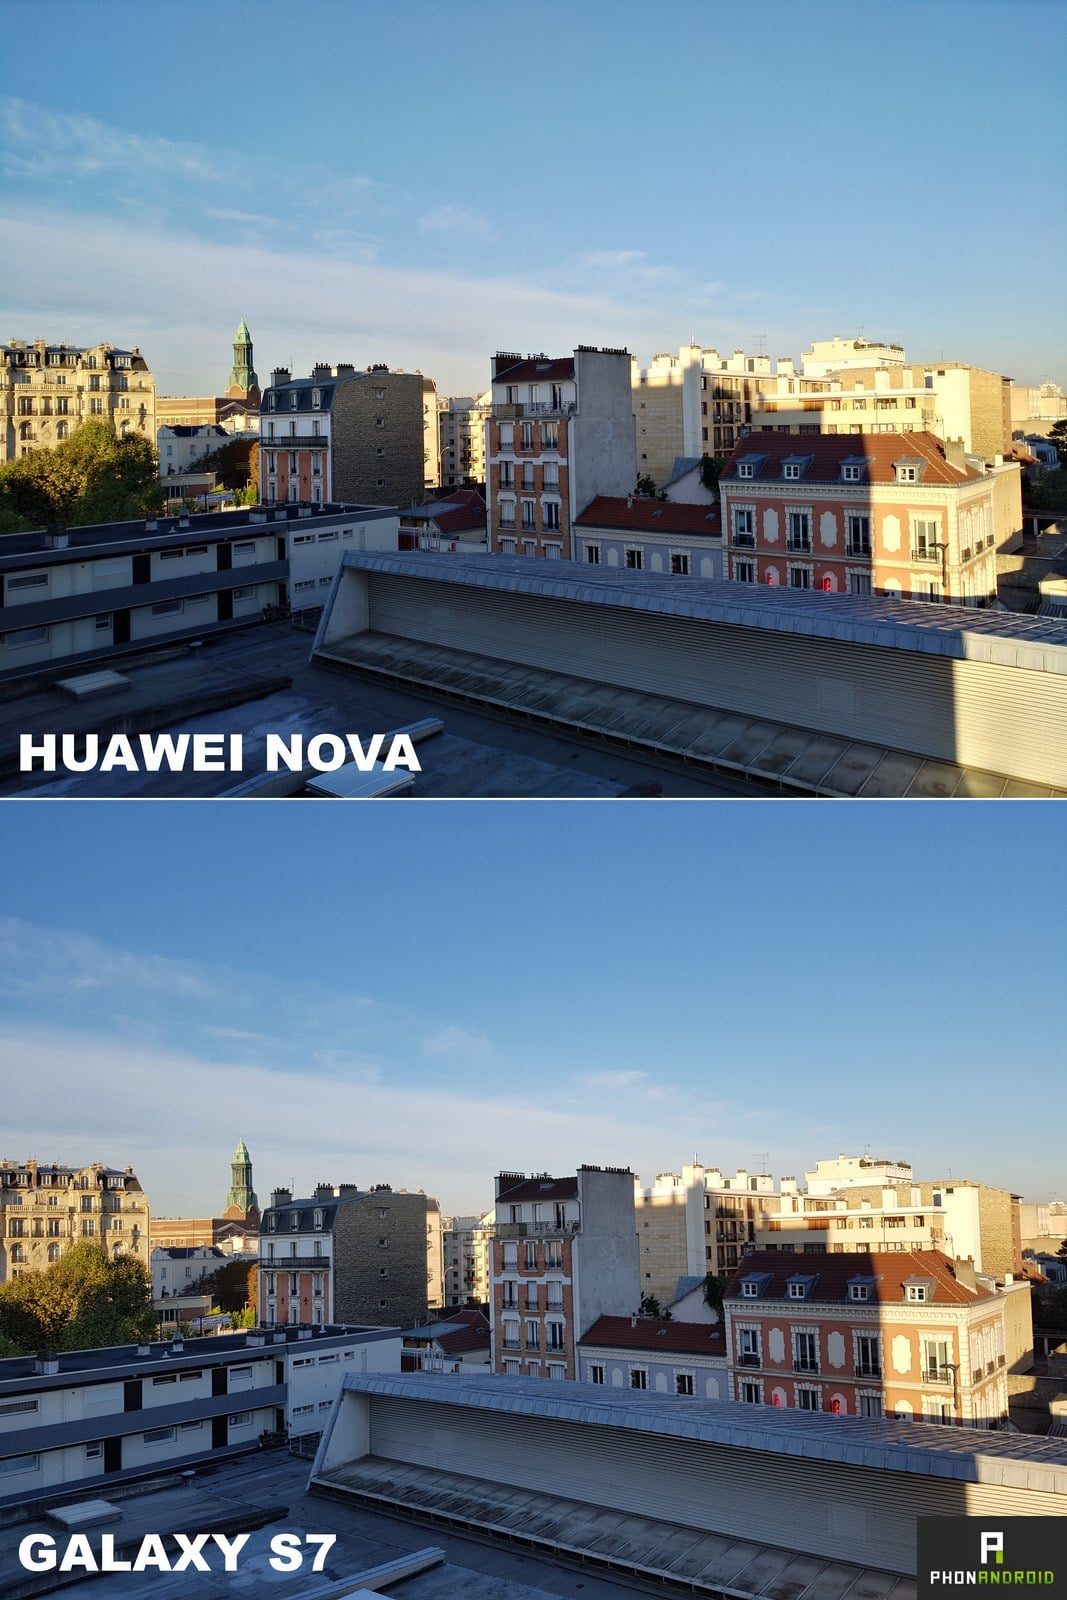 huawei nova vs galaxy s7 photo